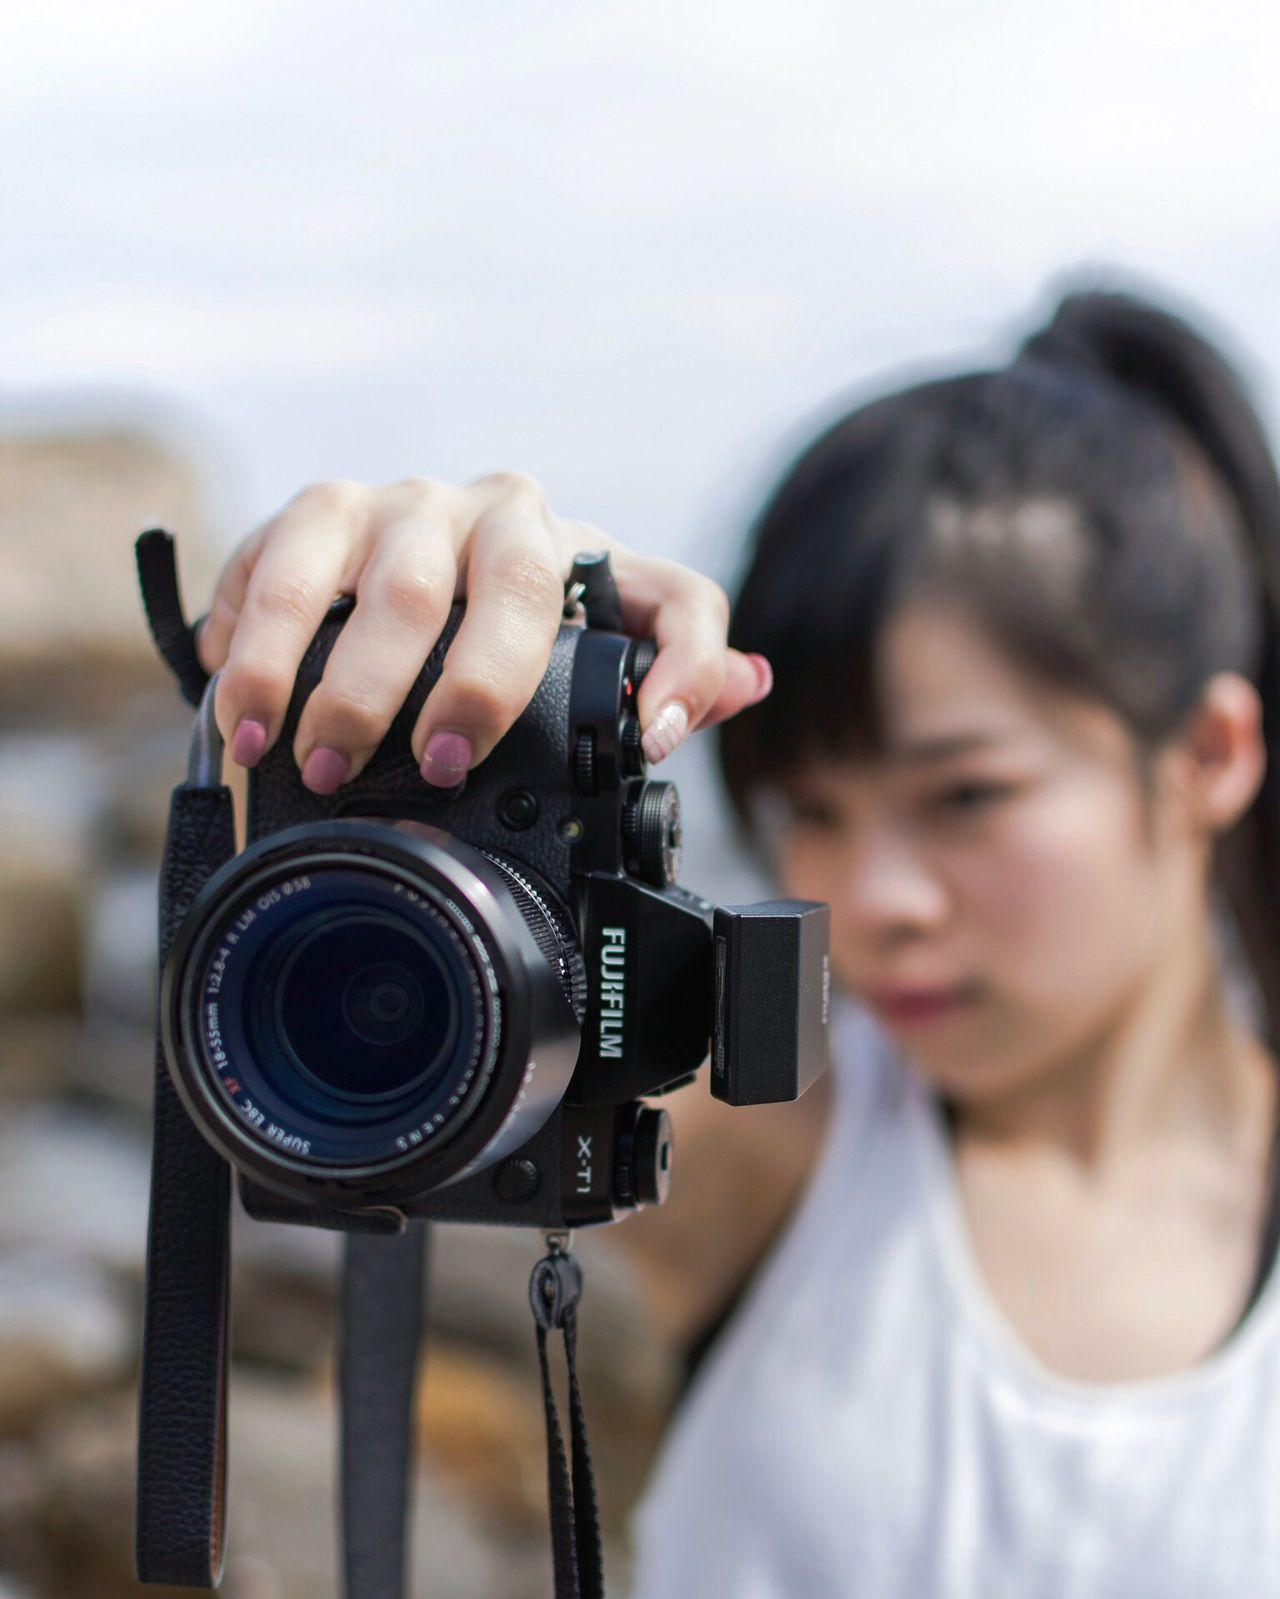 Camera - Photographic Equipment Photography Themes Professional Occupation Holding Close-up Women Photographing Photographer Lens - Eye